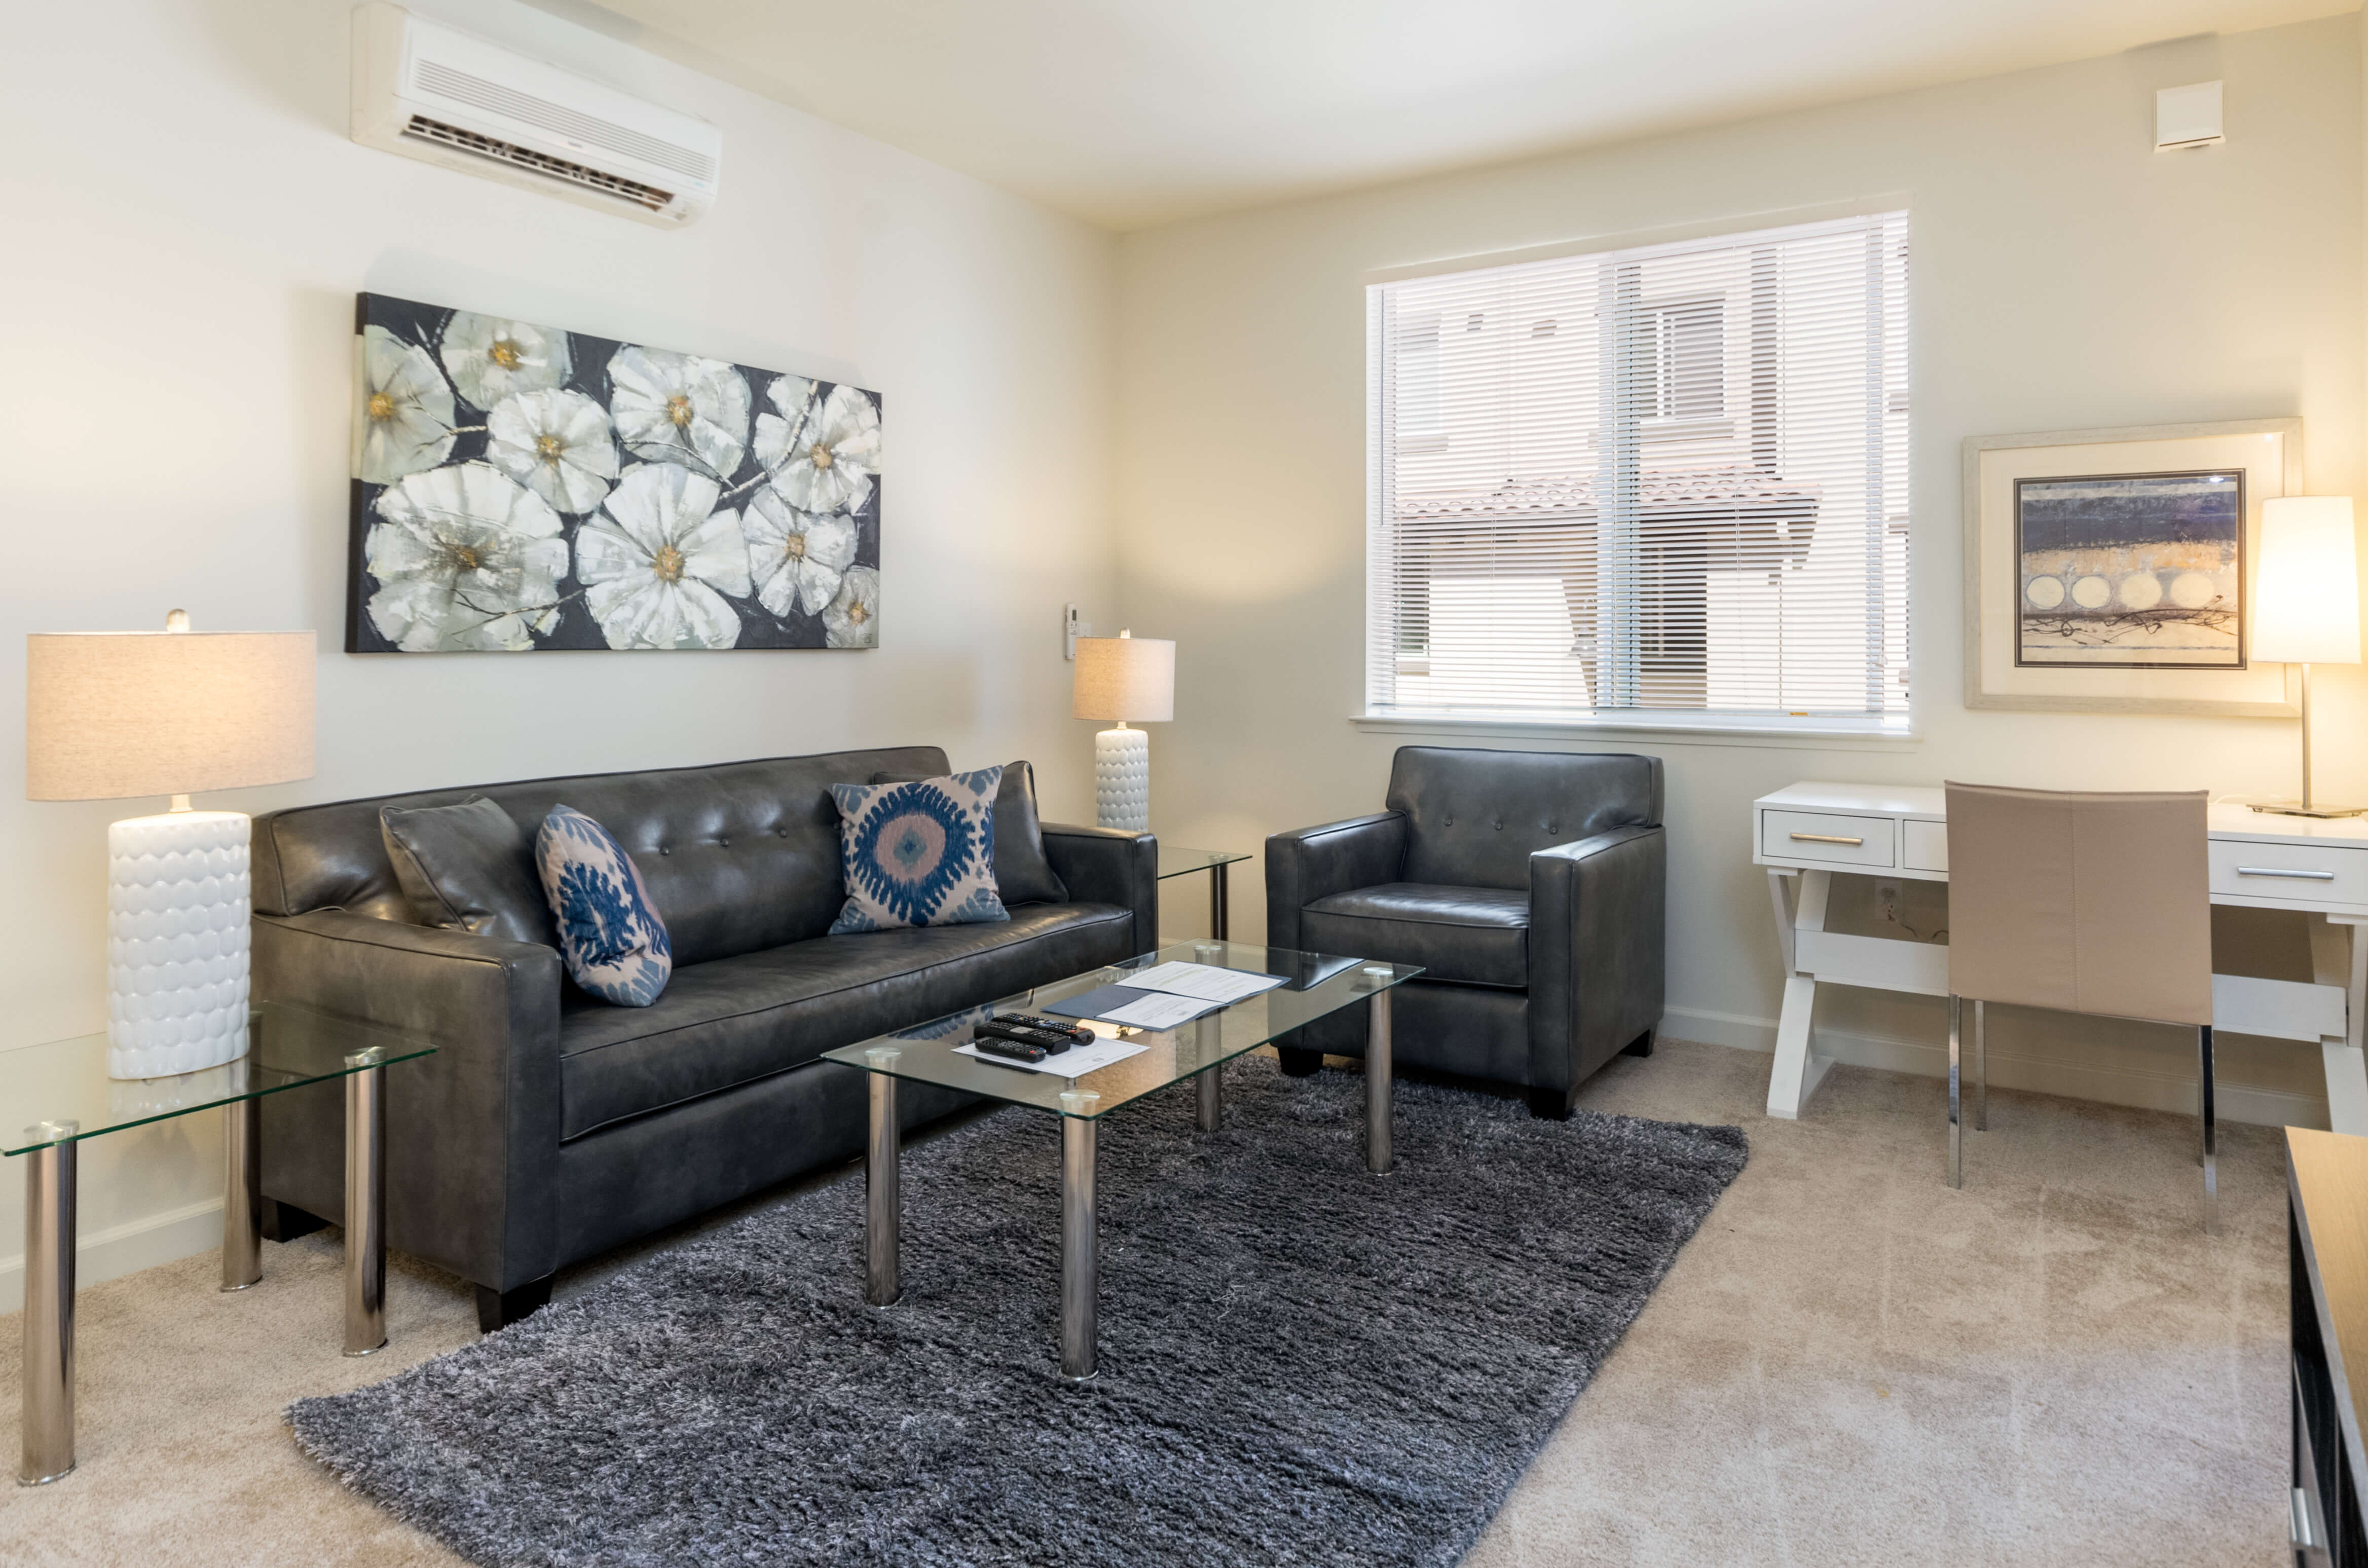 Sunnyvale Furnished 2 Bedroom Apartment For Rent 6360 Per Month Rental Id 2870058